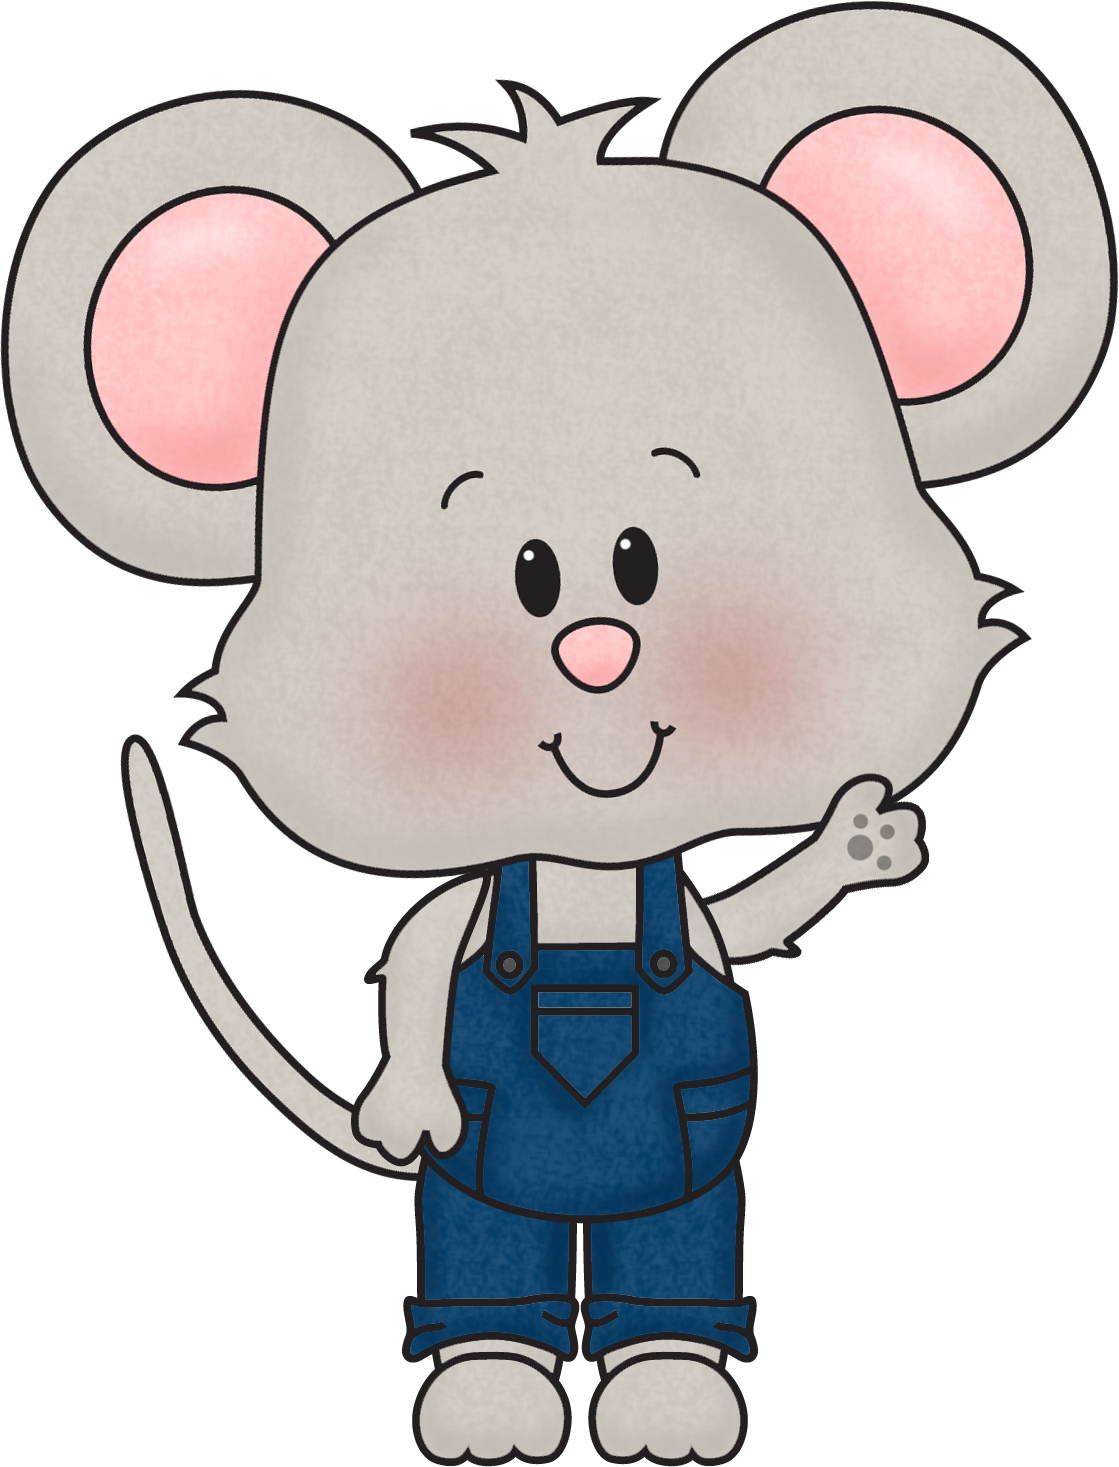 Cute little mouse clipart image free stock Free Cute Mouse Cliparts, Download Free Clip Art, Free Clip ... image free stock